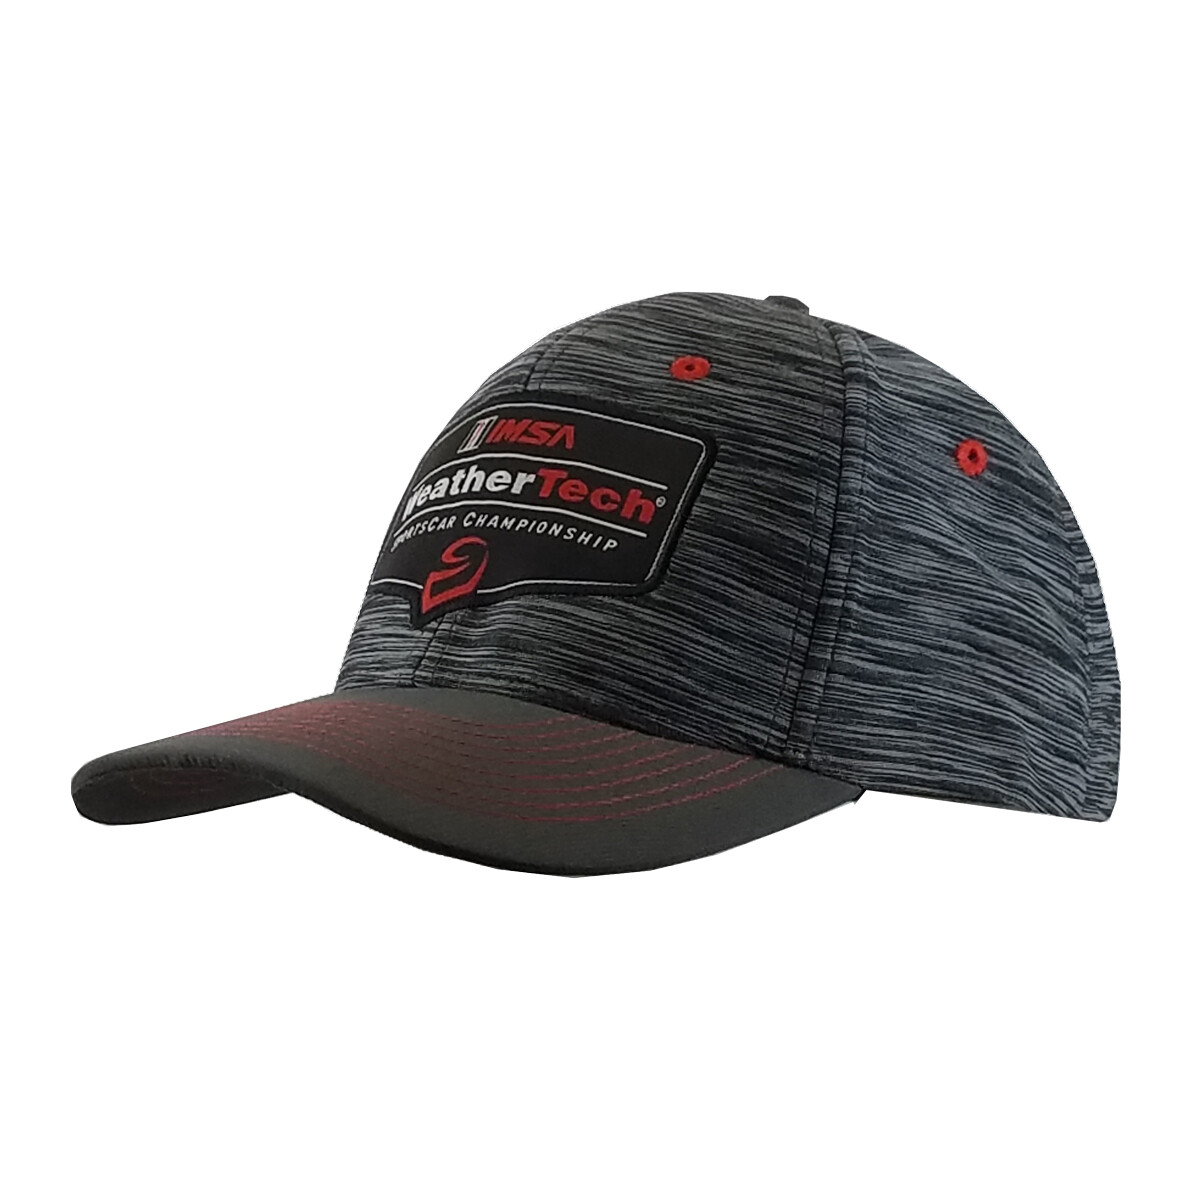 IMSA WeatherTech Game Hat - Grey/Black